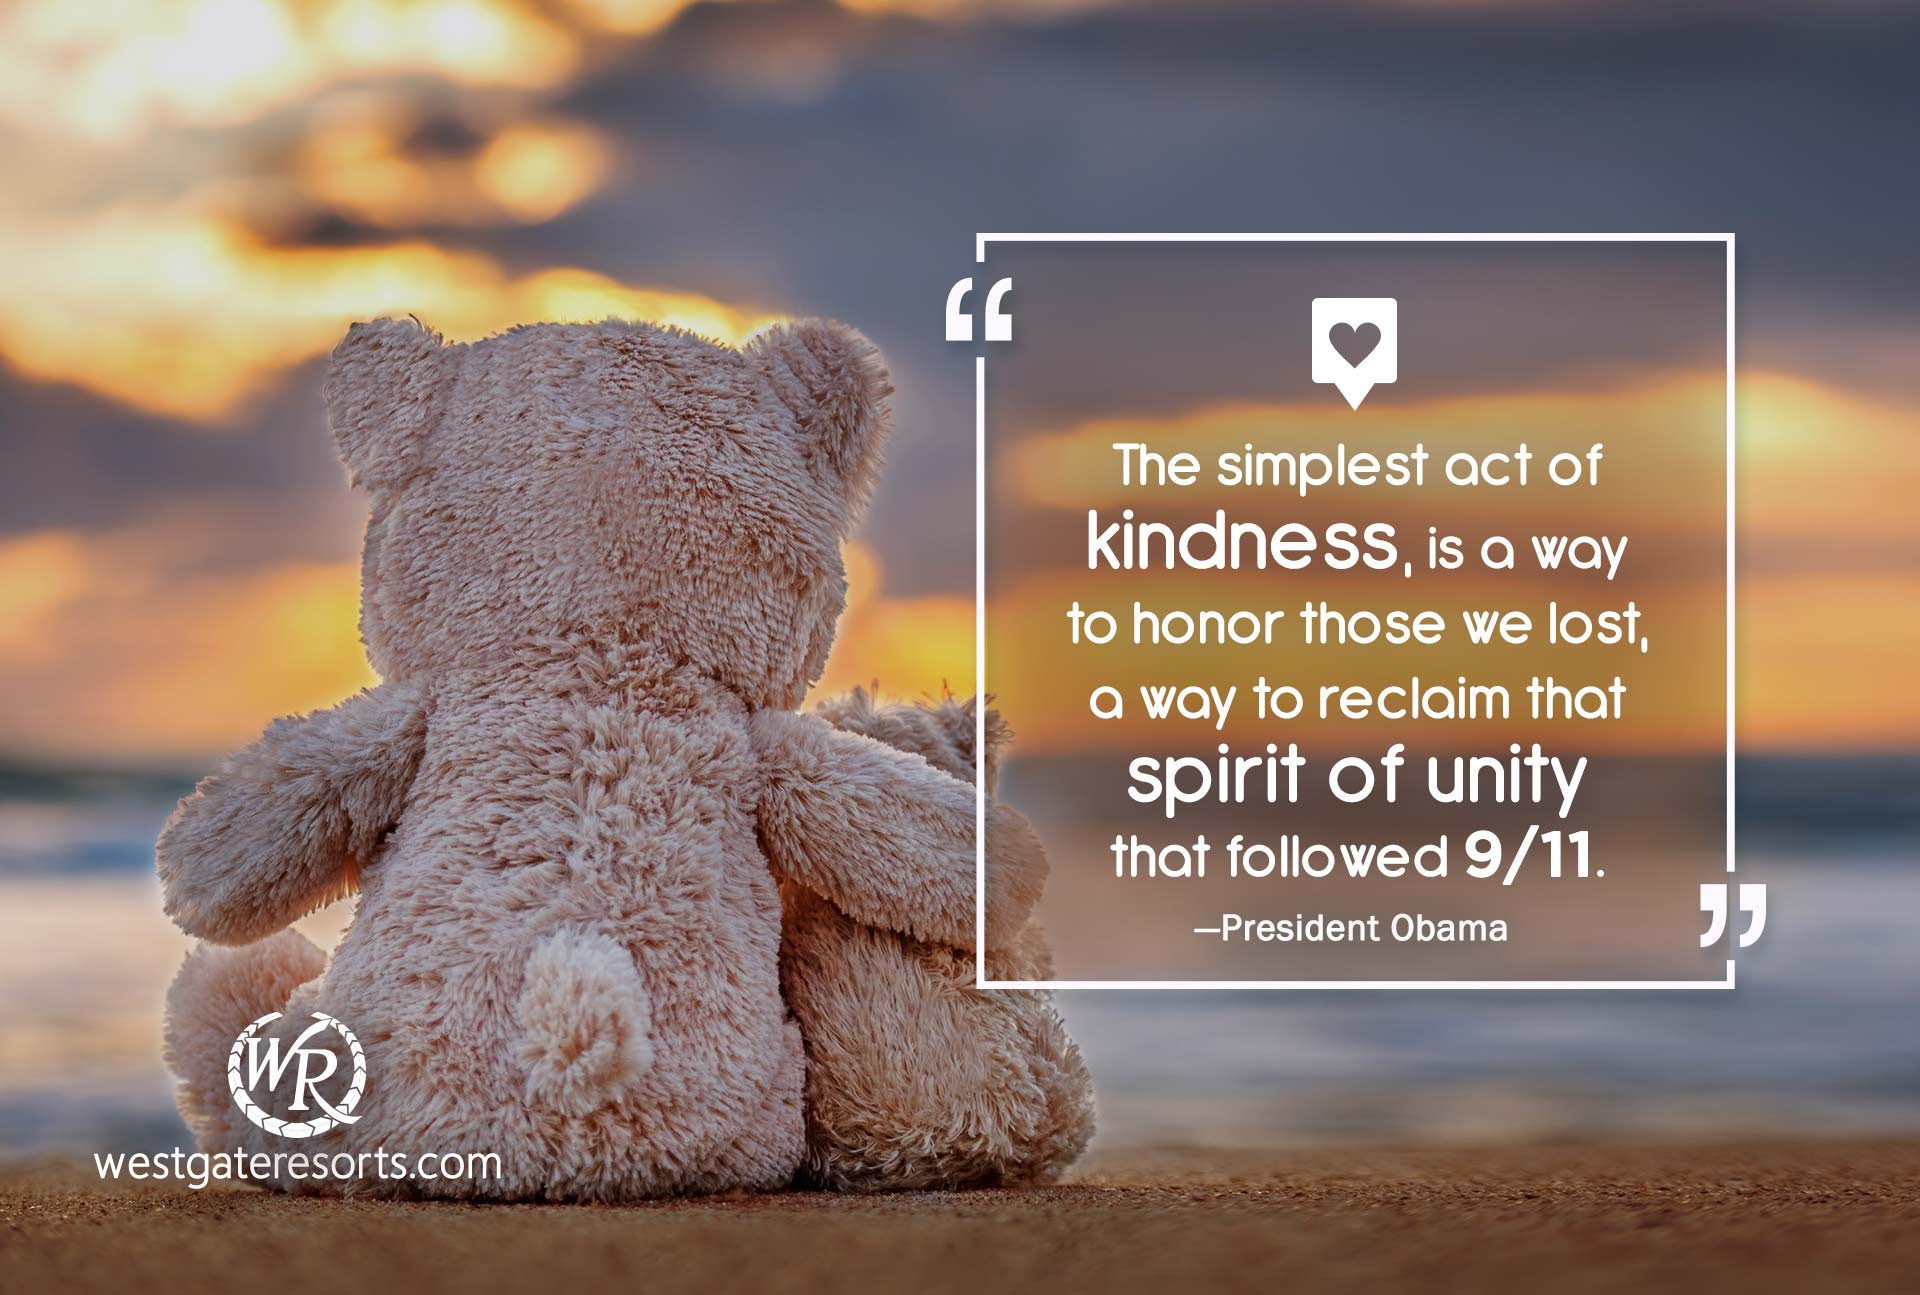 The simplest act of kindness, is a way to honor those we lost, a way to reclaim that spirit of unity that followed 9/11 | Patriotic Quotes